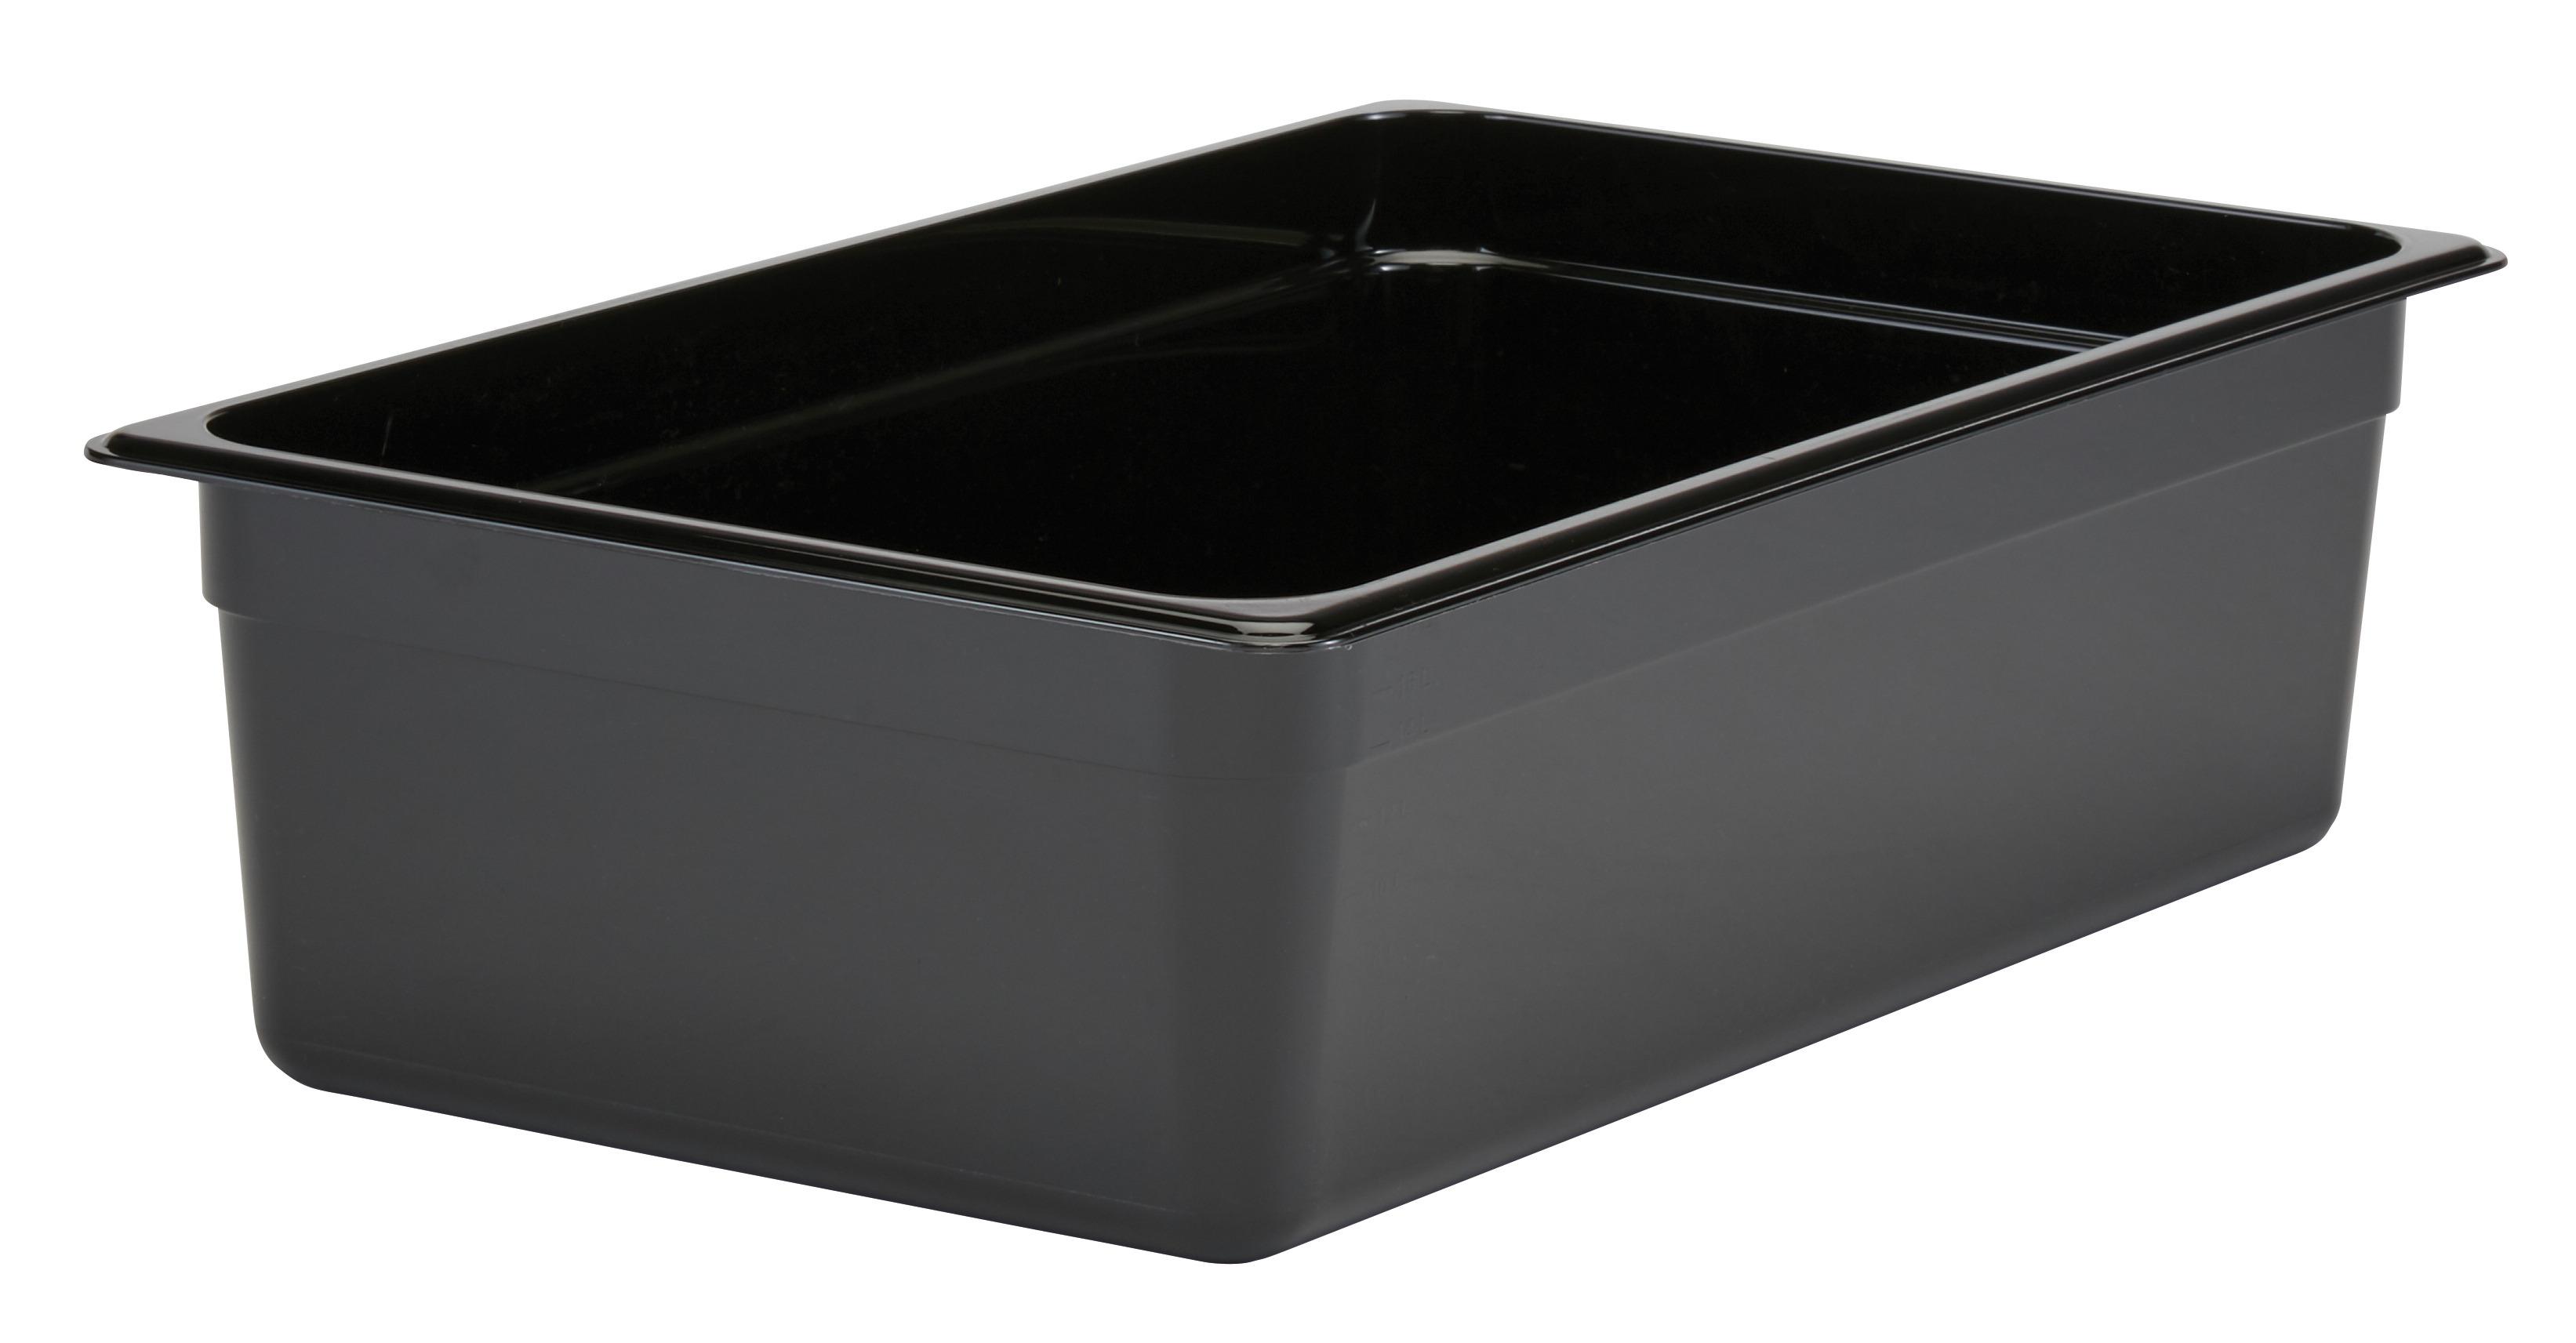 Cambro 16CW110 food/beverage storage container